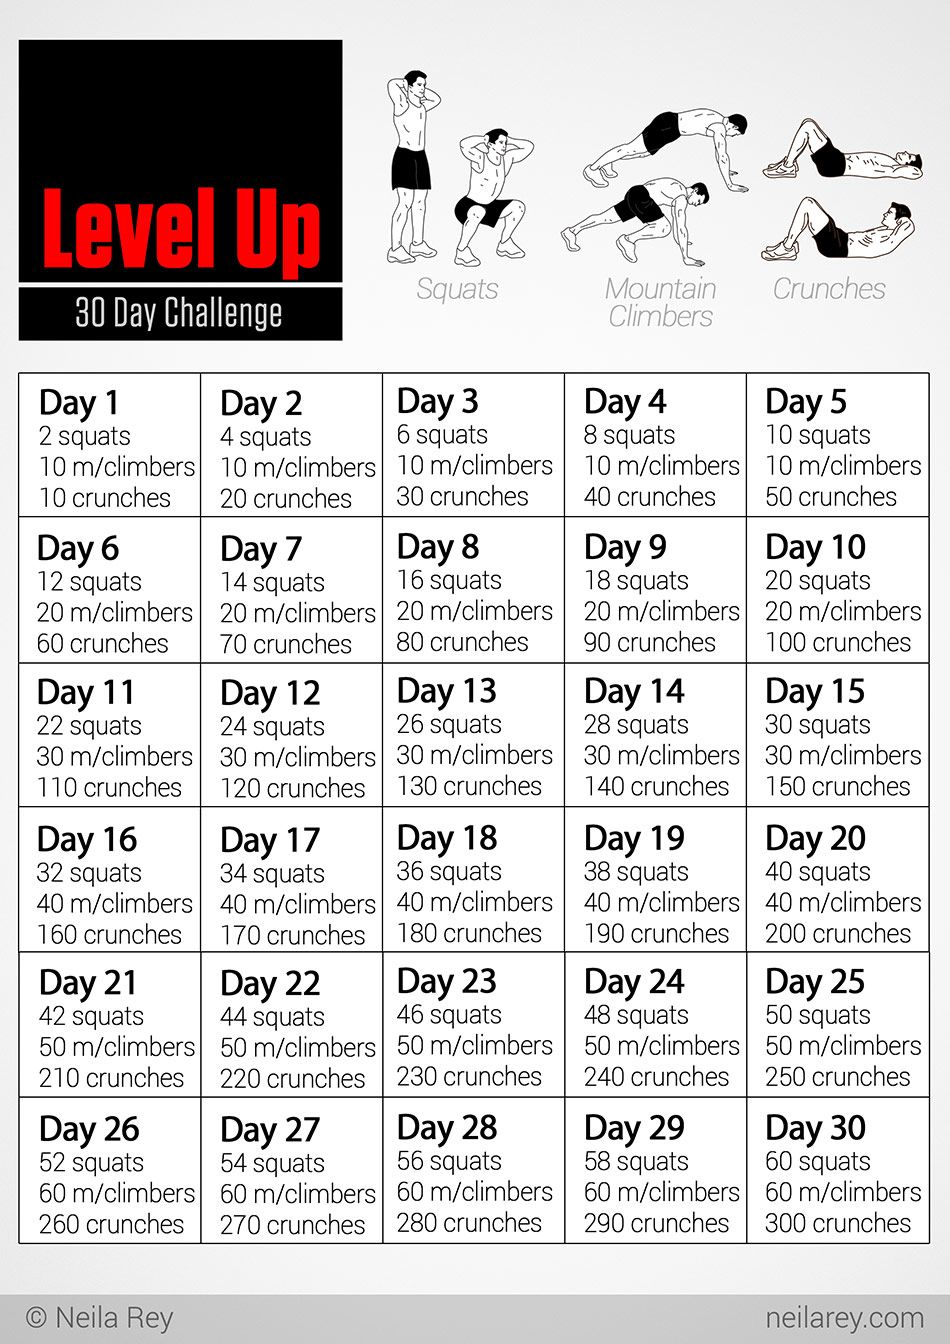 level up 30 day challenge pretty tips secrets ideas pinterest. Black Bedroom Furniture Sets. Home Design Ideas